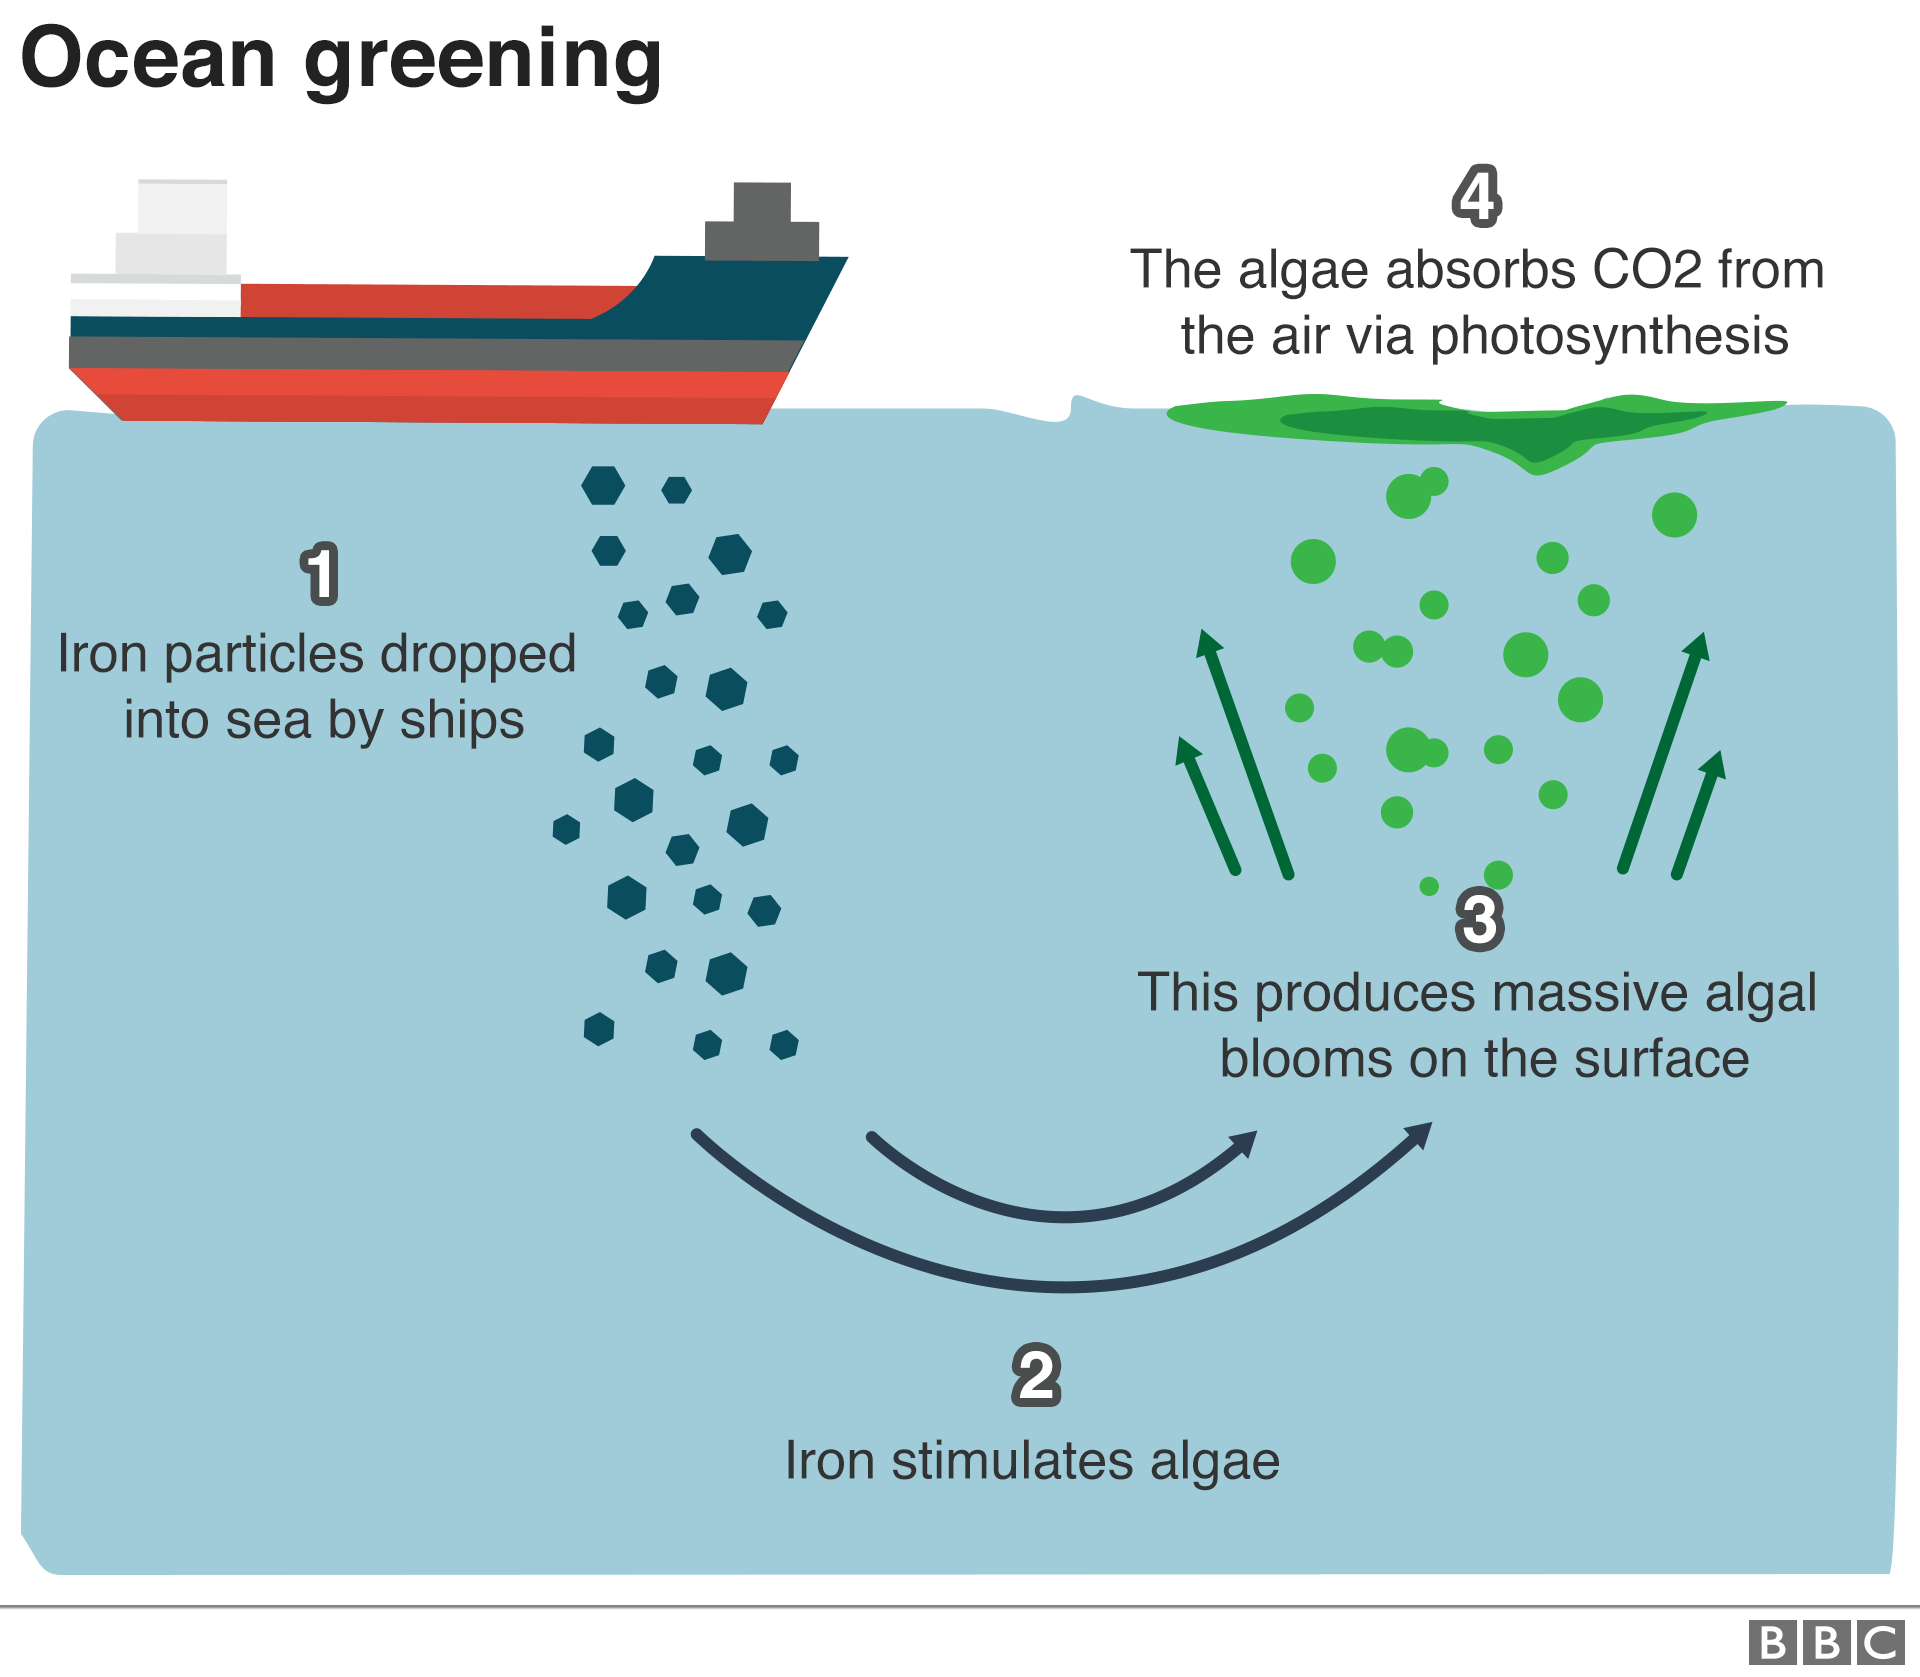 Graphic: How ocean greening' fit work